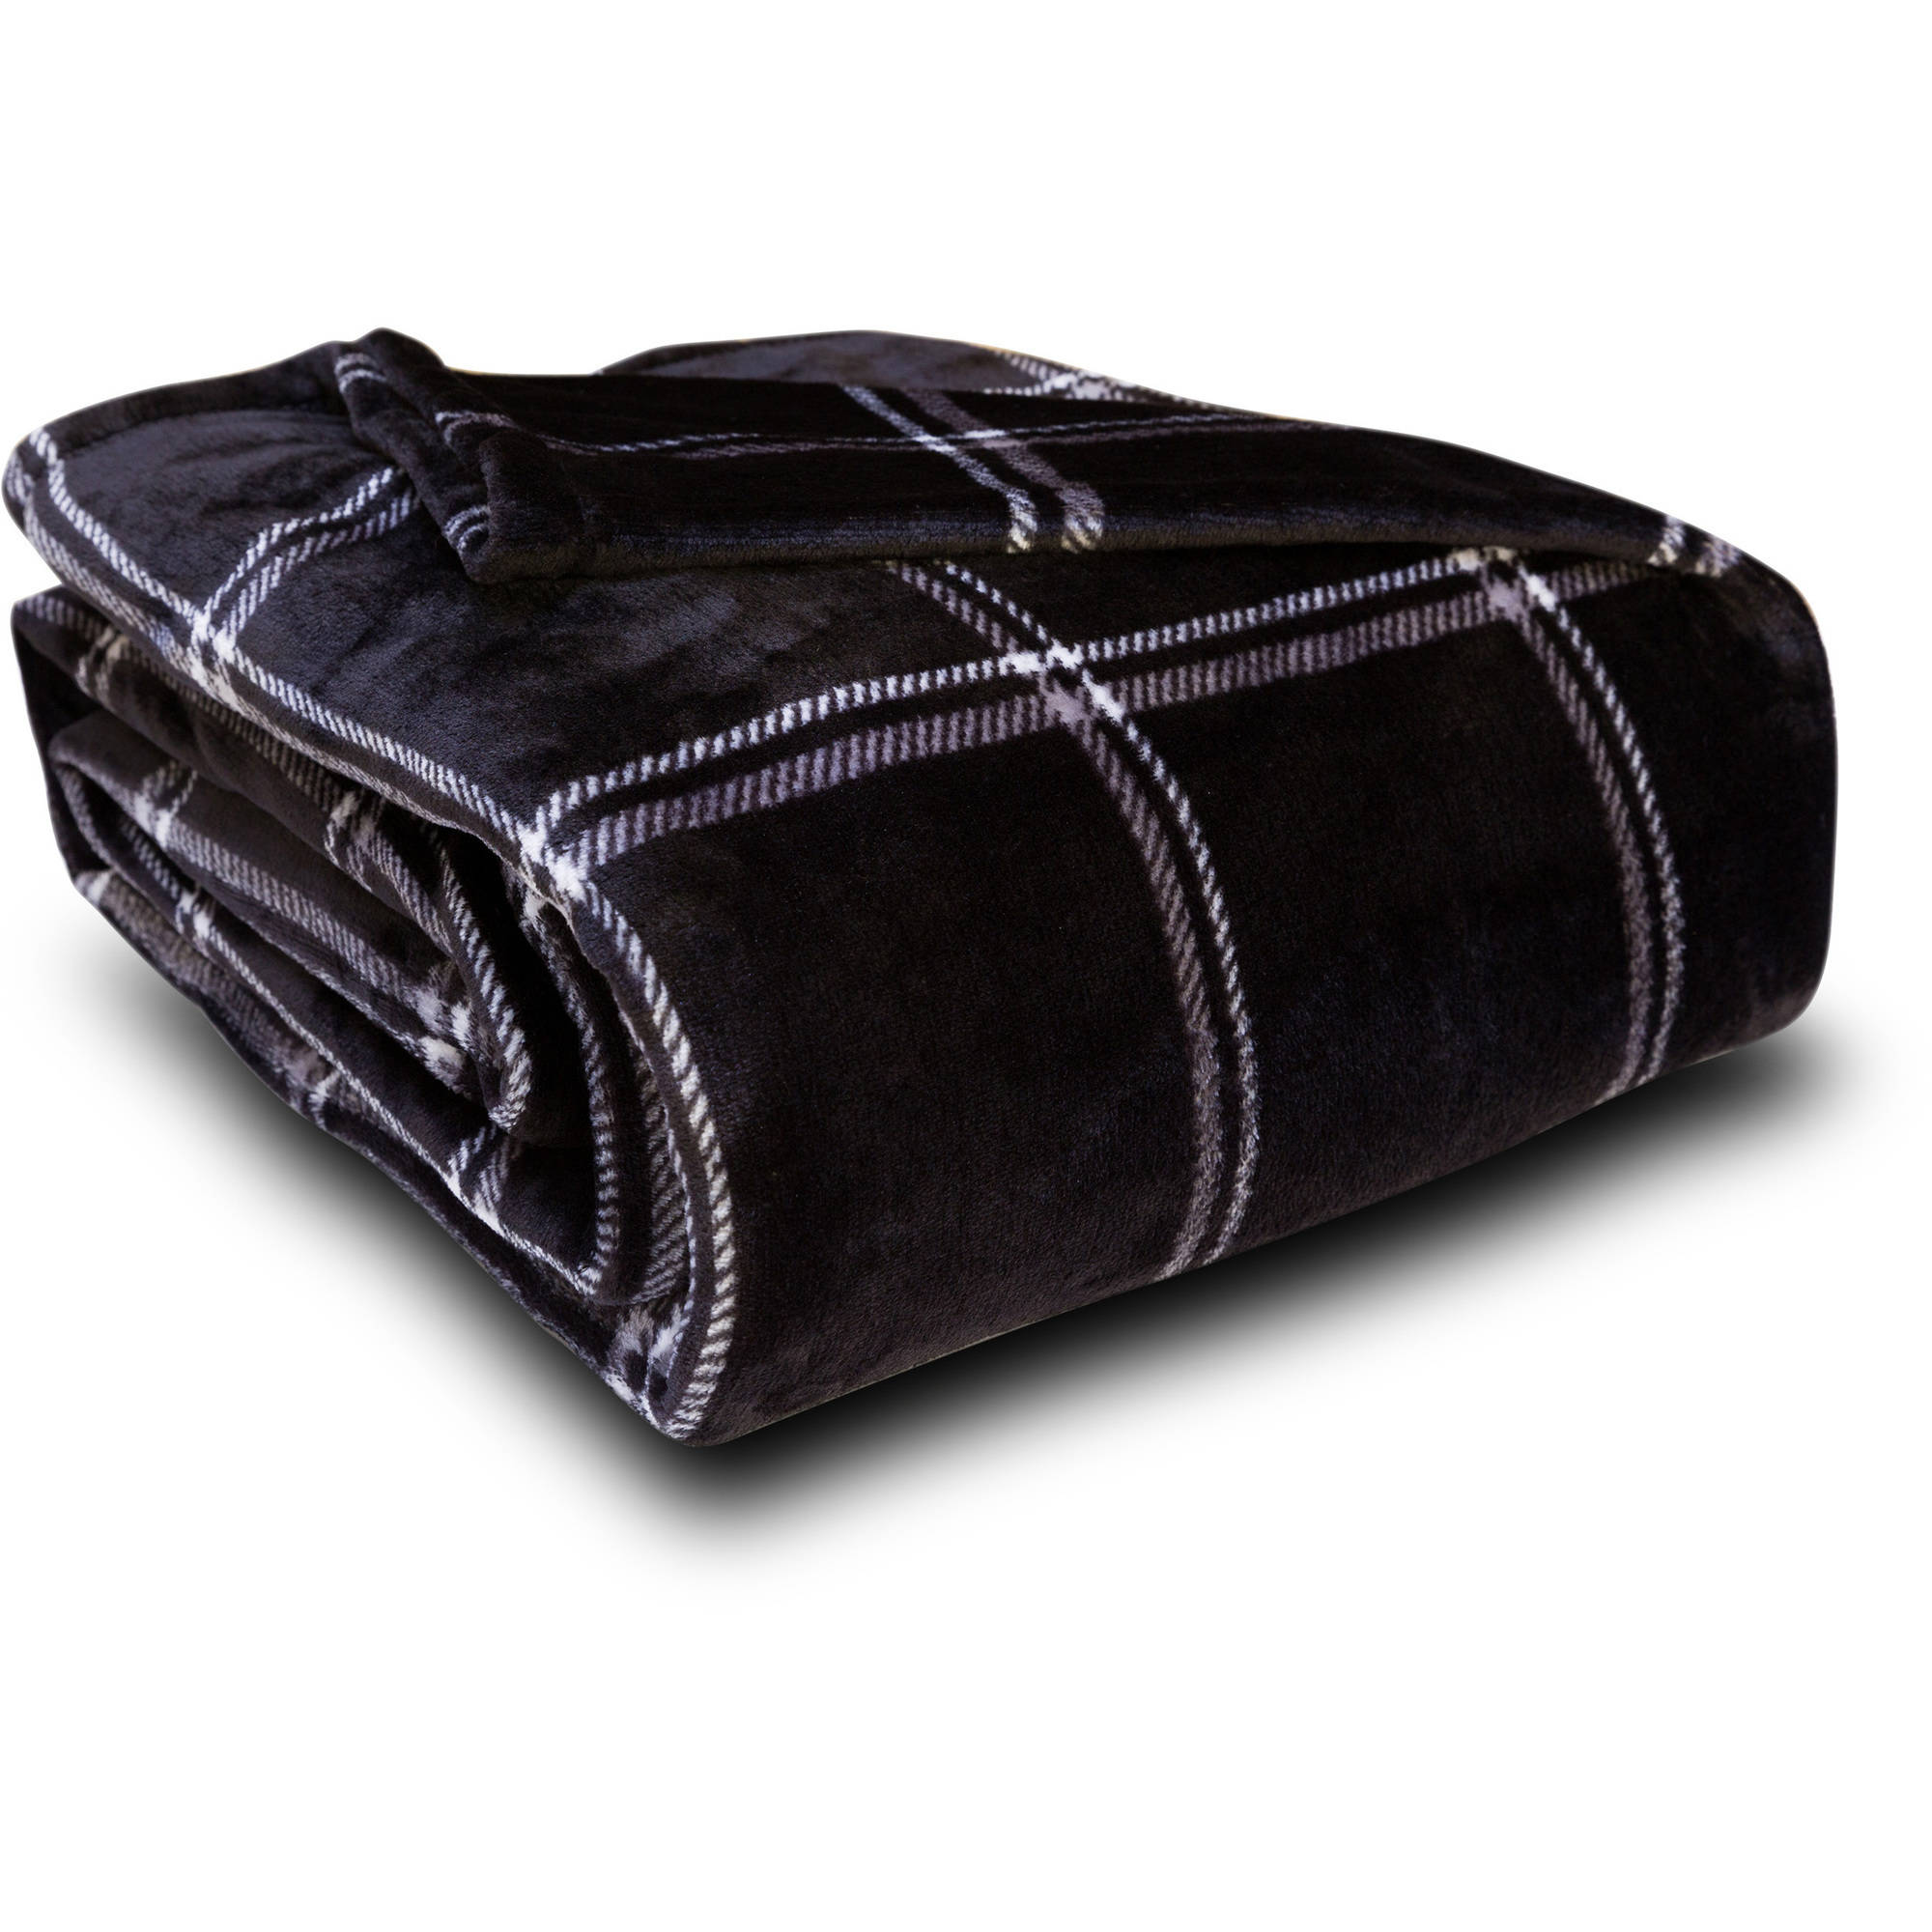 Mainstays Deluxe Plush Blanket